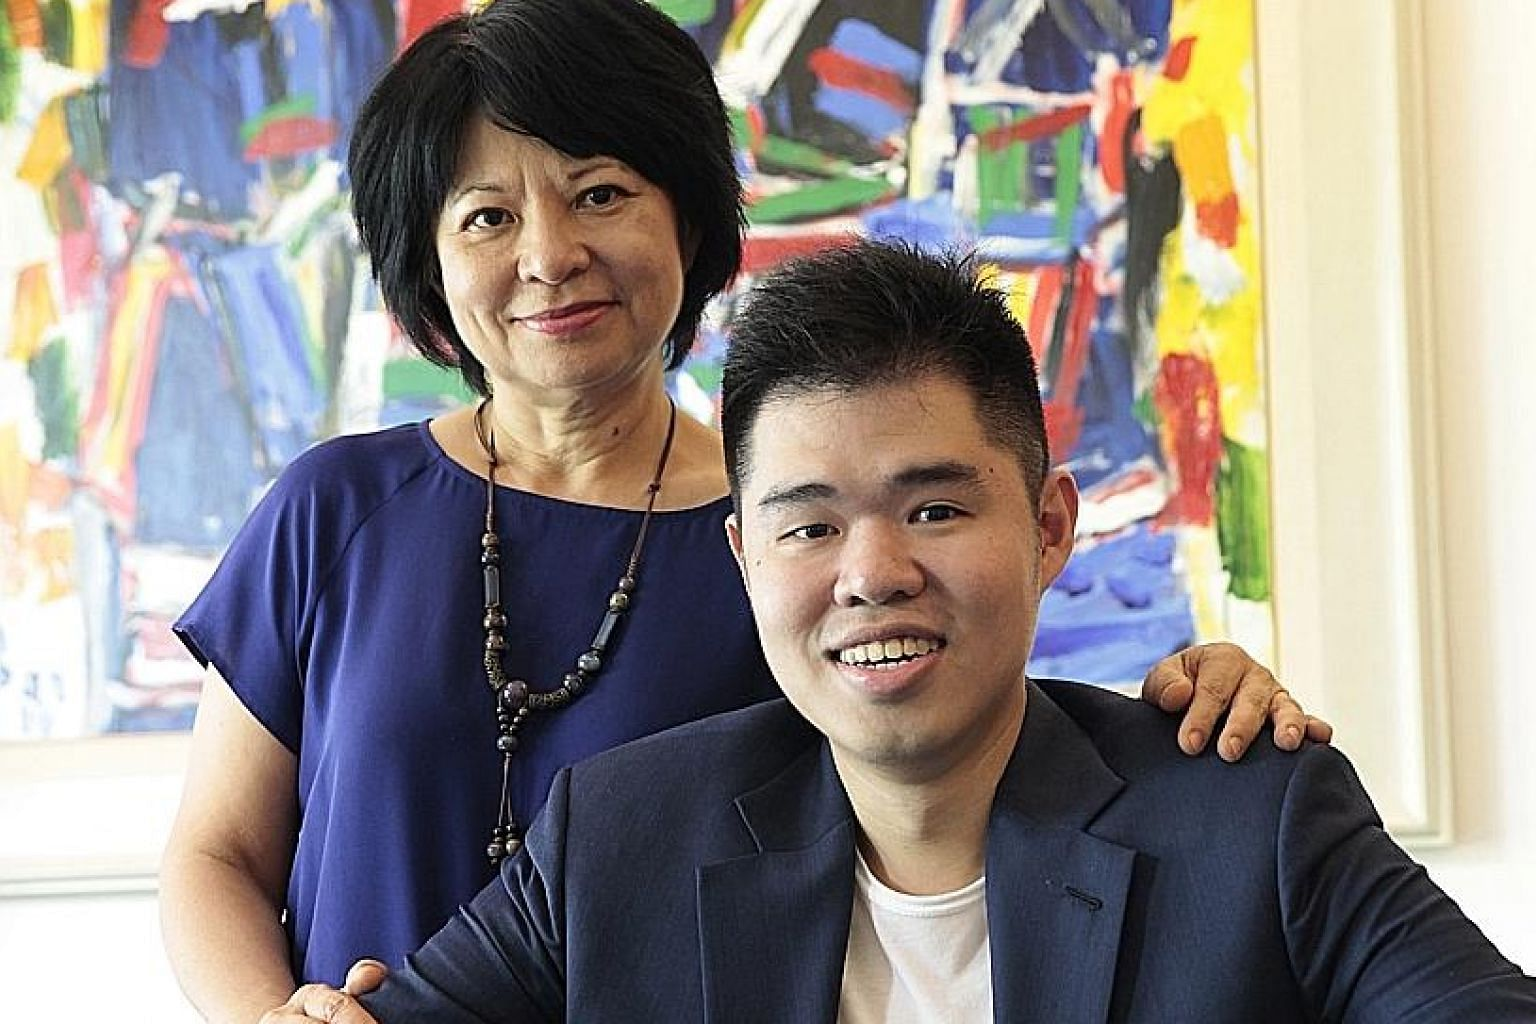 Mr Zac Chua, seen here with his mum Lee Li, a 59-year-old retiree, set up The Kettle Gourmet last year to make oven-baked speciality popcorn. He plans to expand with other food products and to markets like Indonesia and Hong Kong.